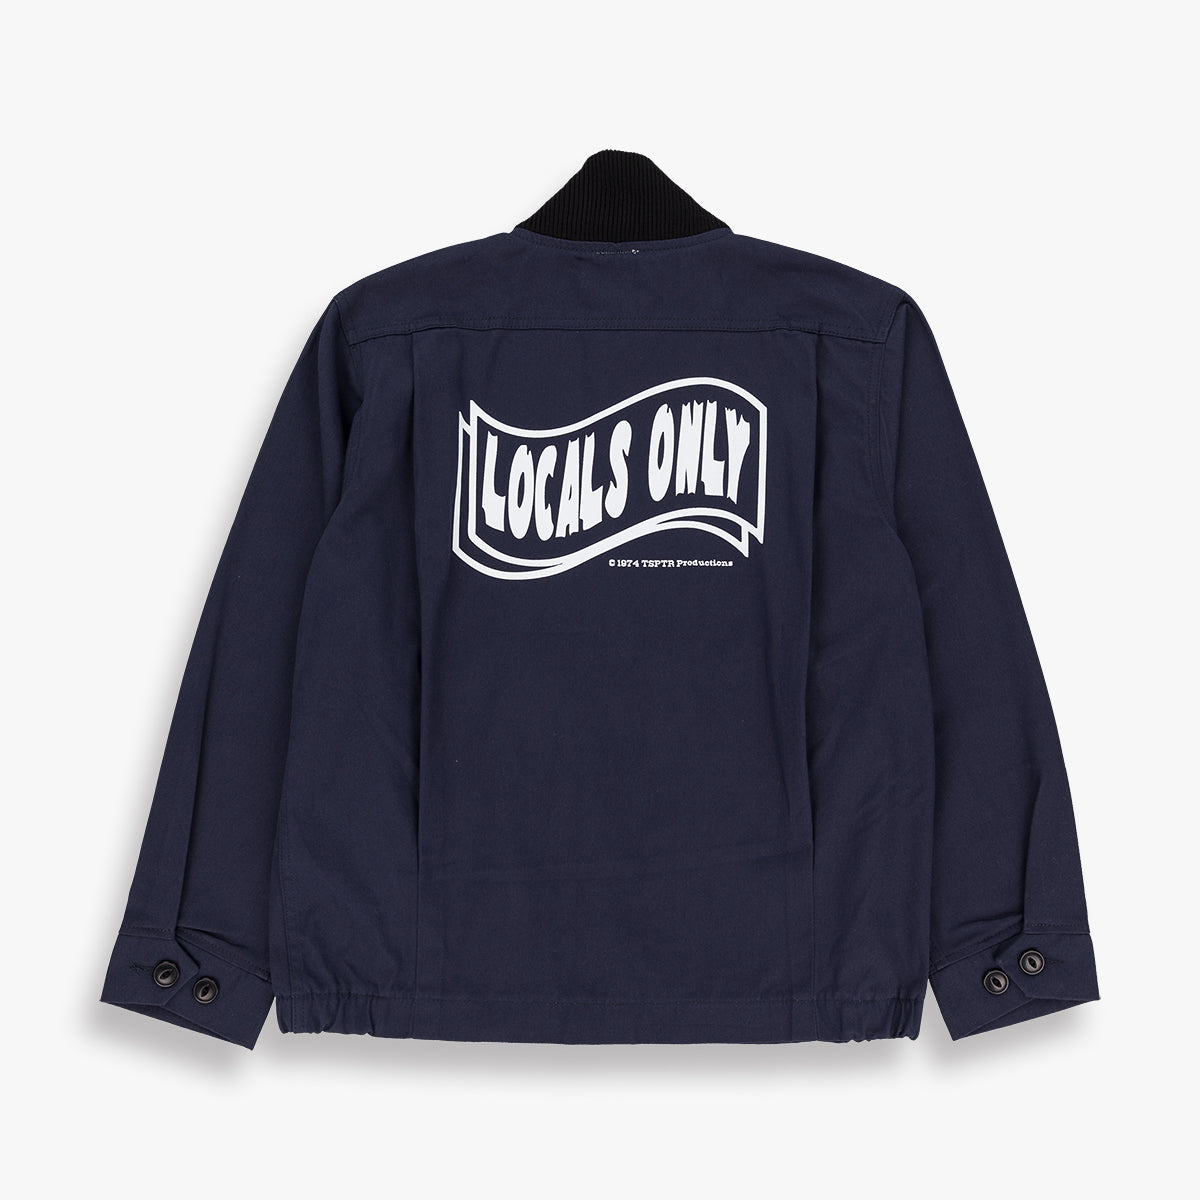 LOCALS ONLY CLUB JACKET